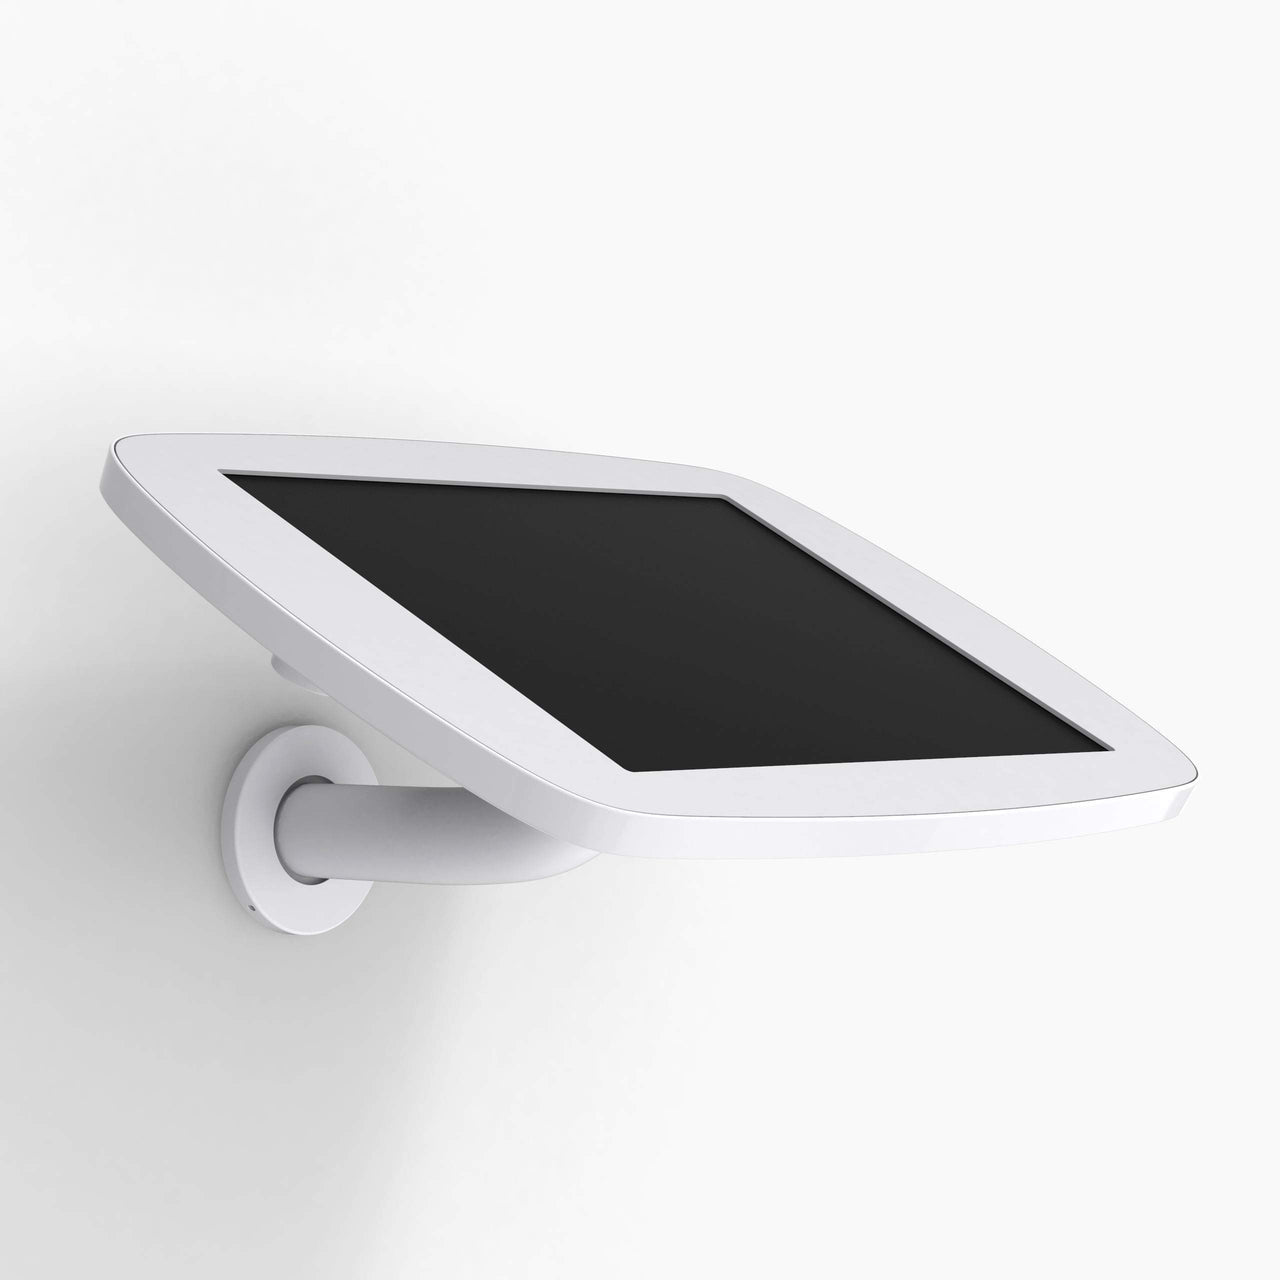 Bouncepad Wallmount - A secure tablet & iPad wall mount in White.